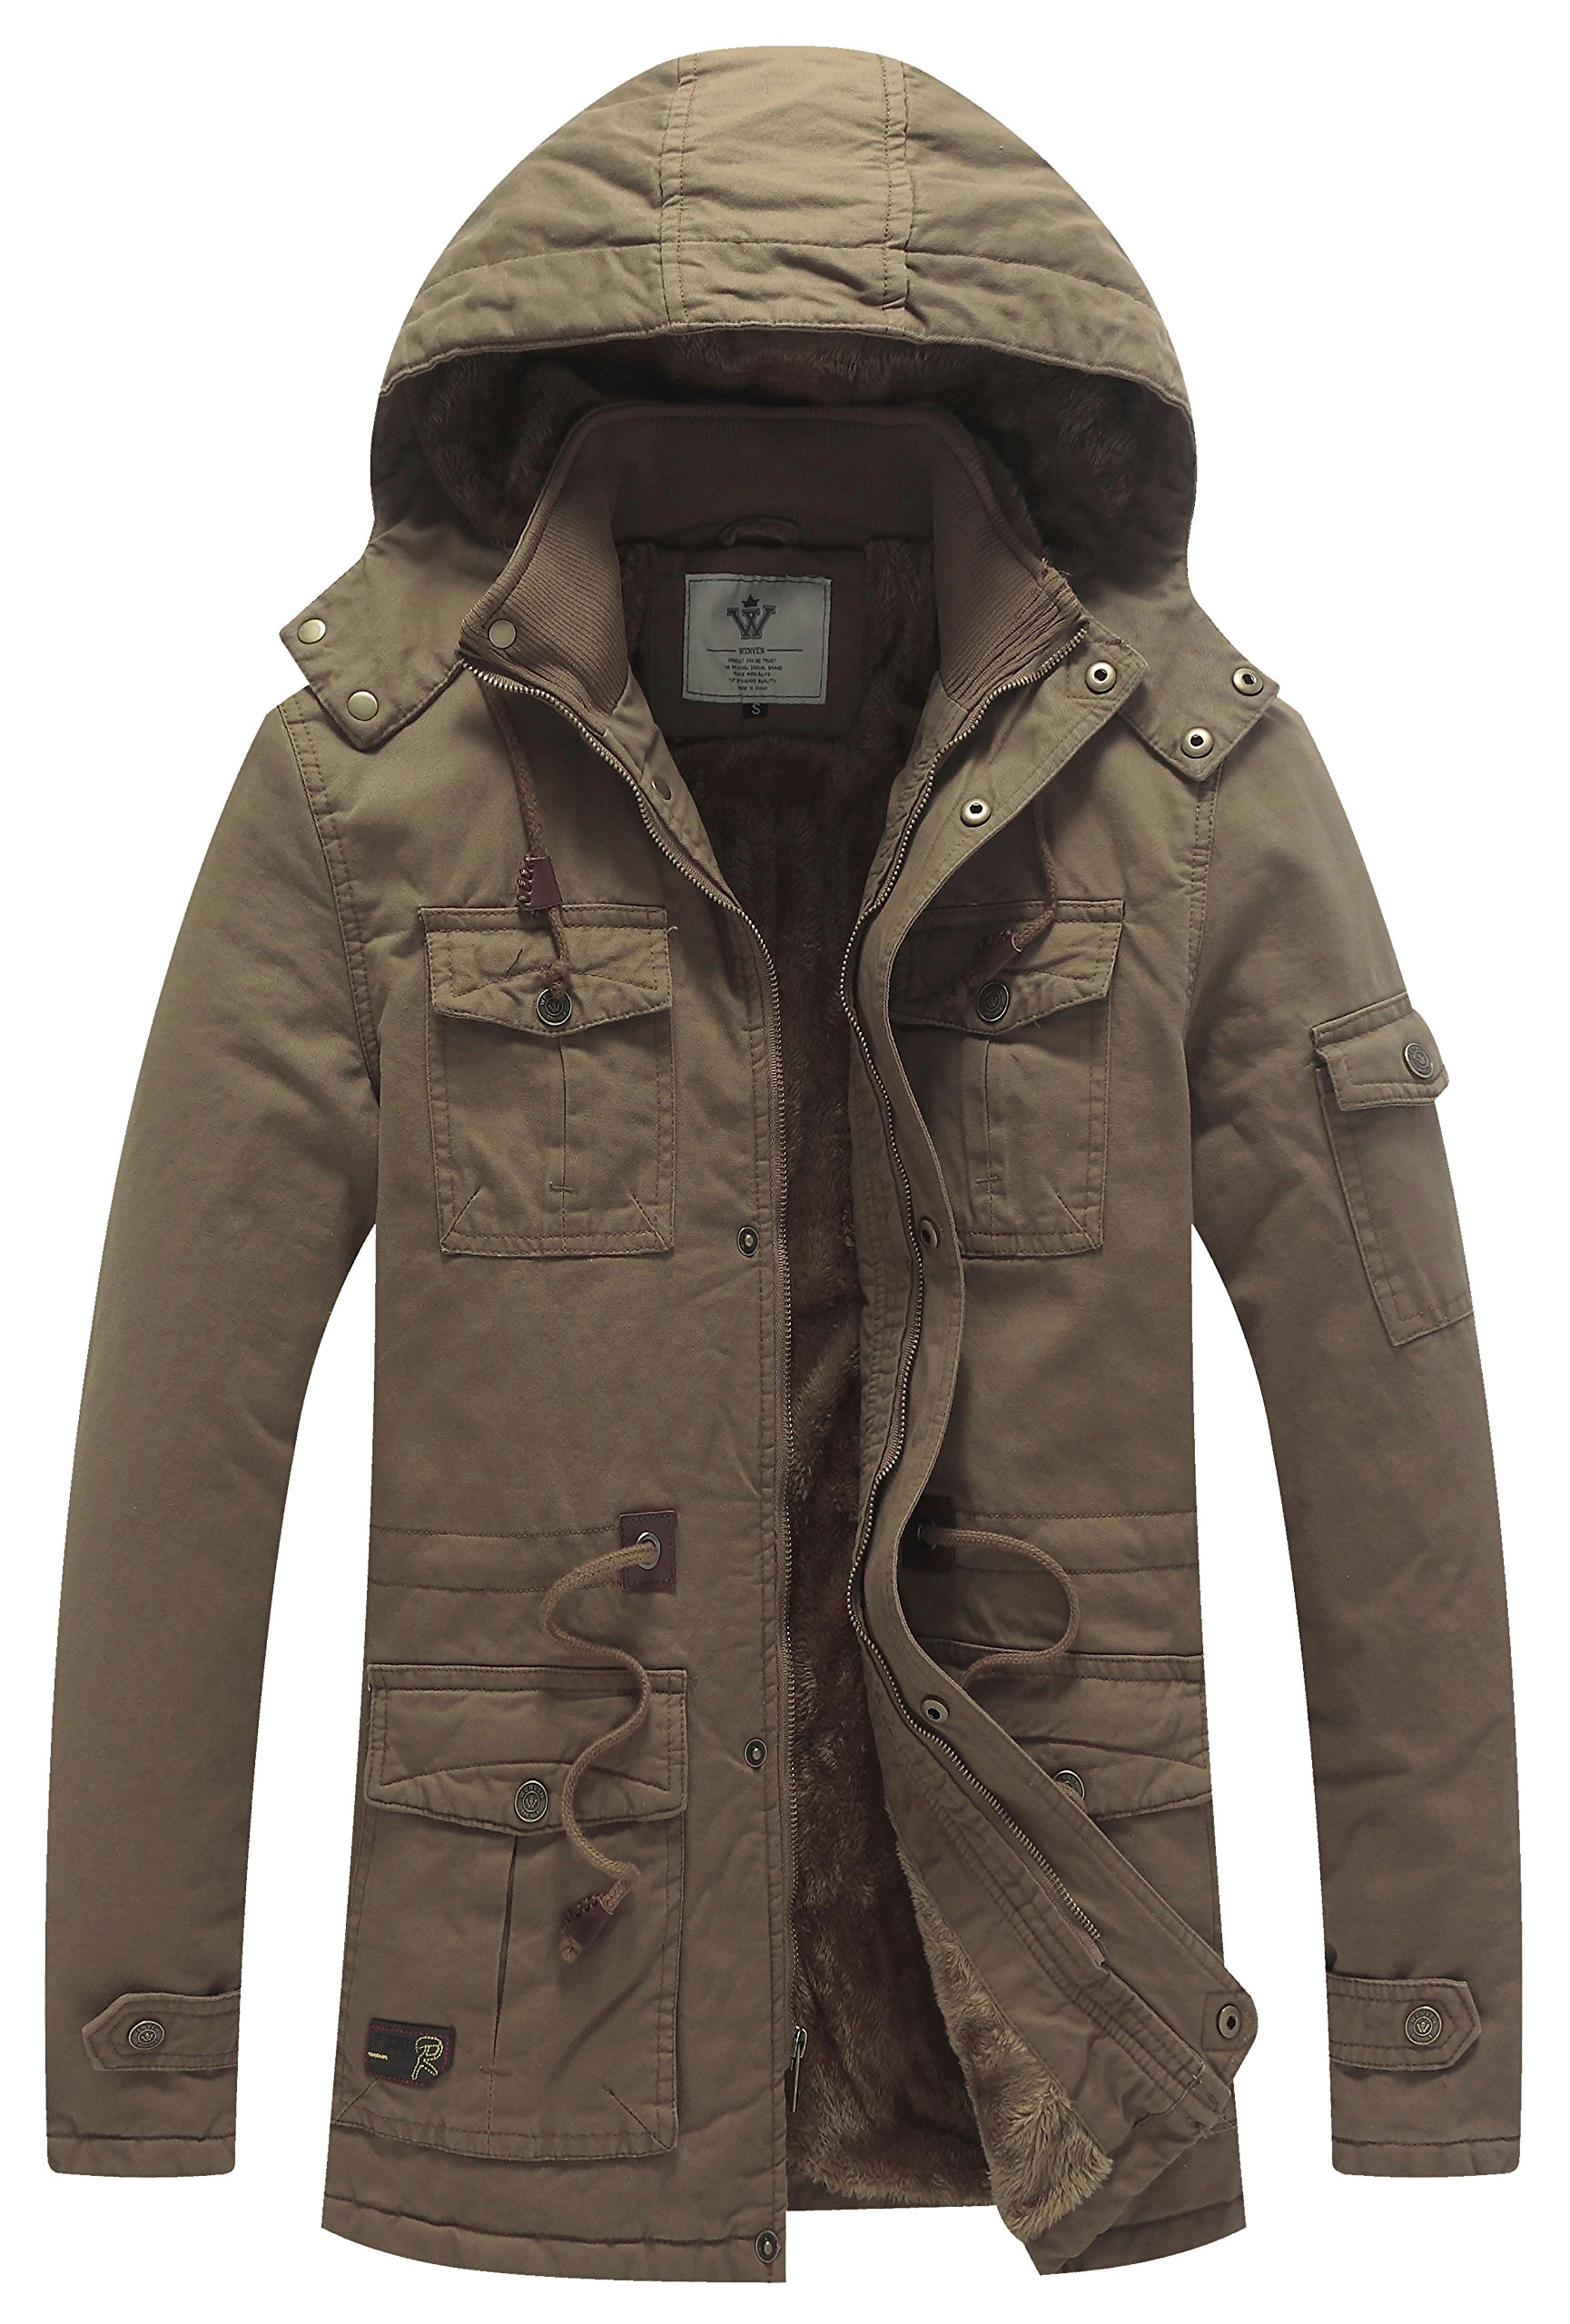 WenVen Men's Causual Thick Winter Hooded Coat Suited To Sub-Zero (Khaki,US XL)